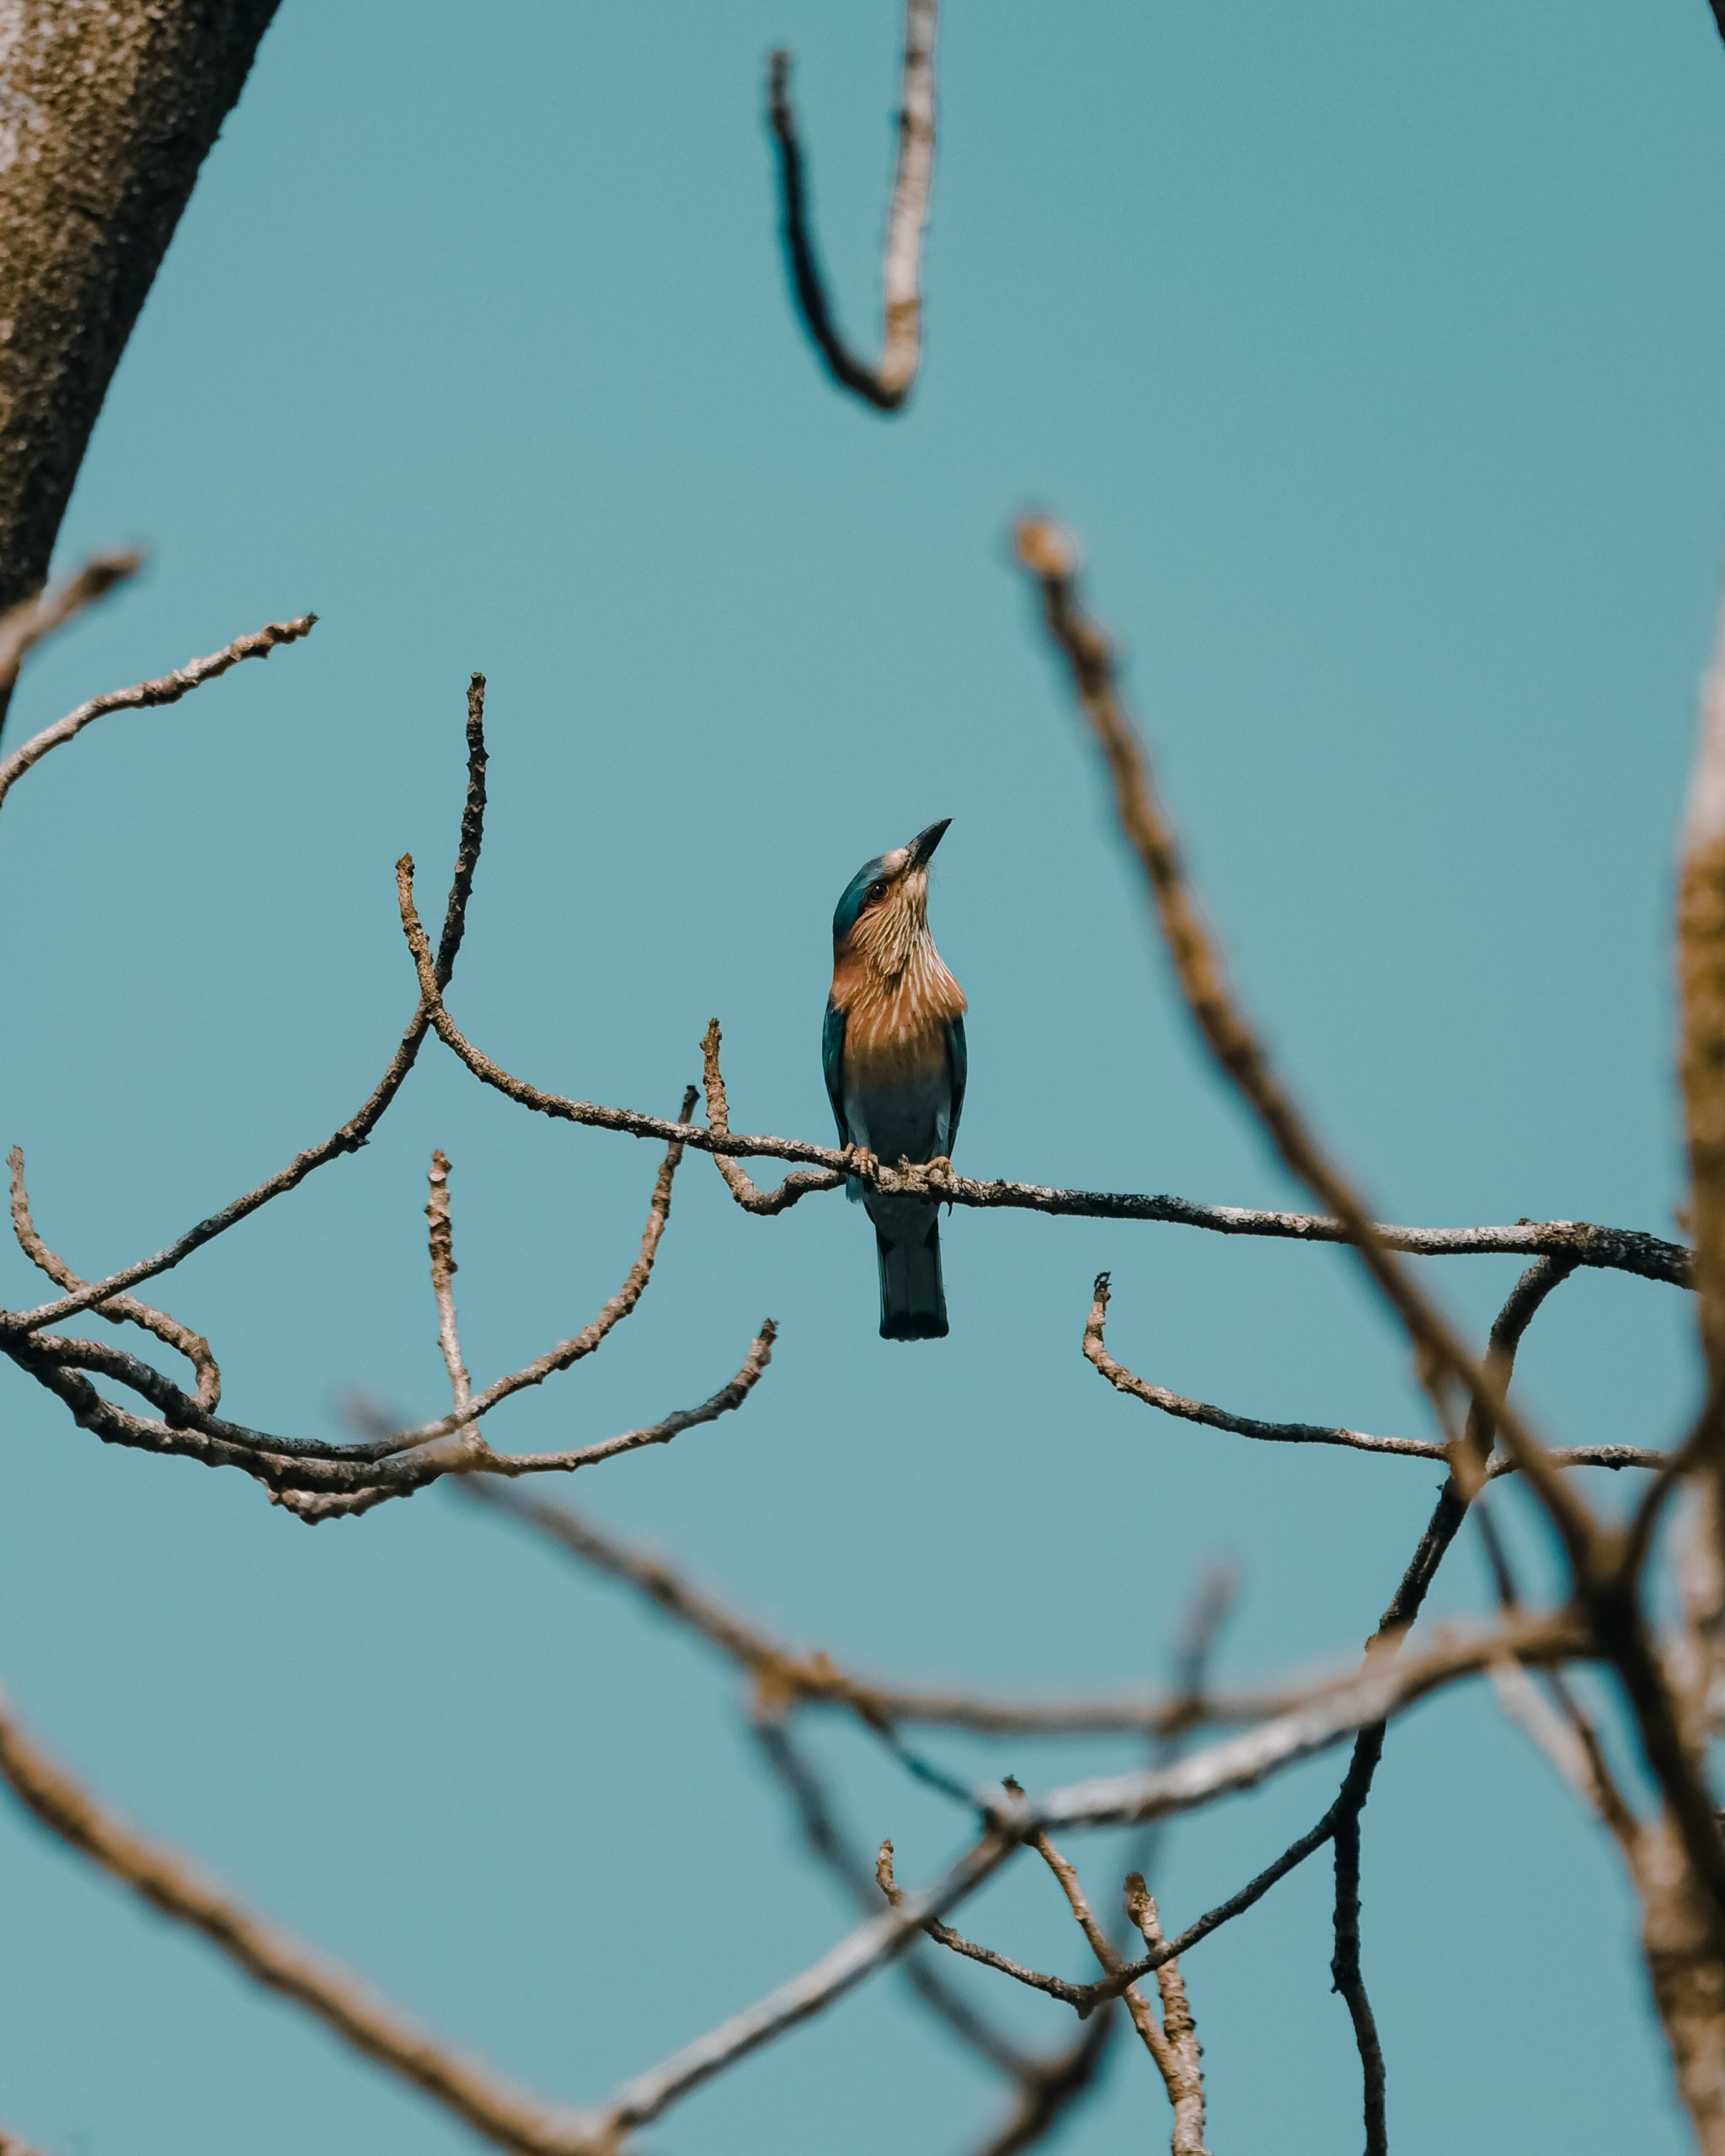 Bird sitting on tree branch